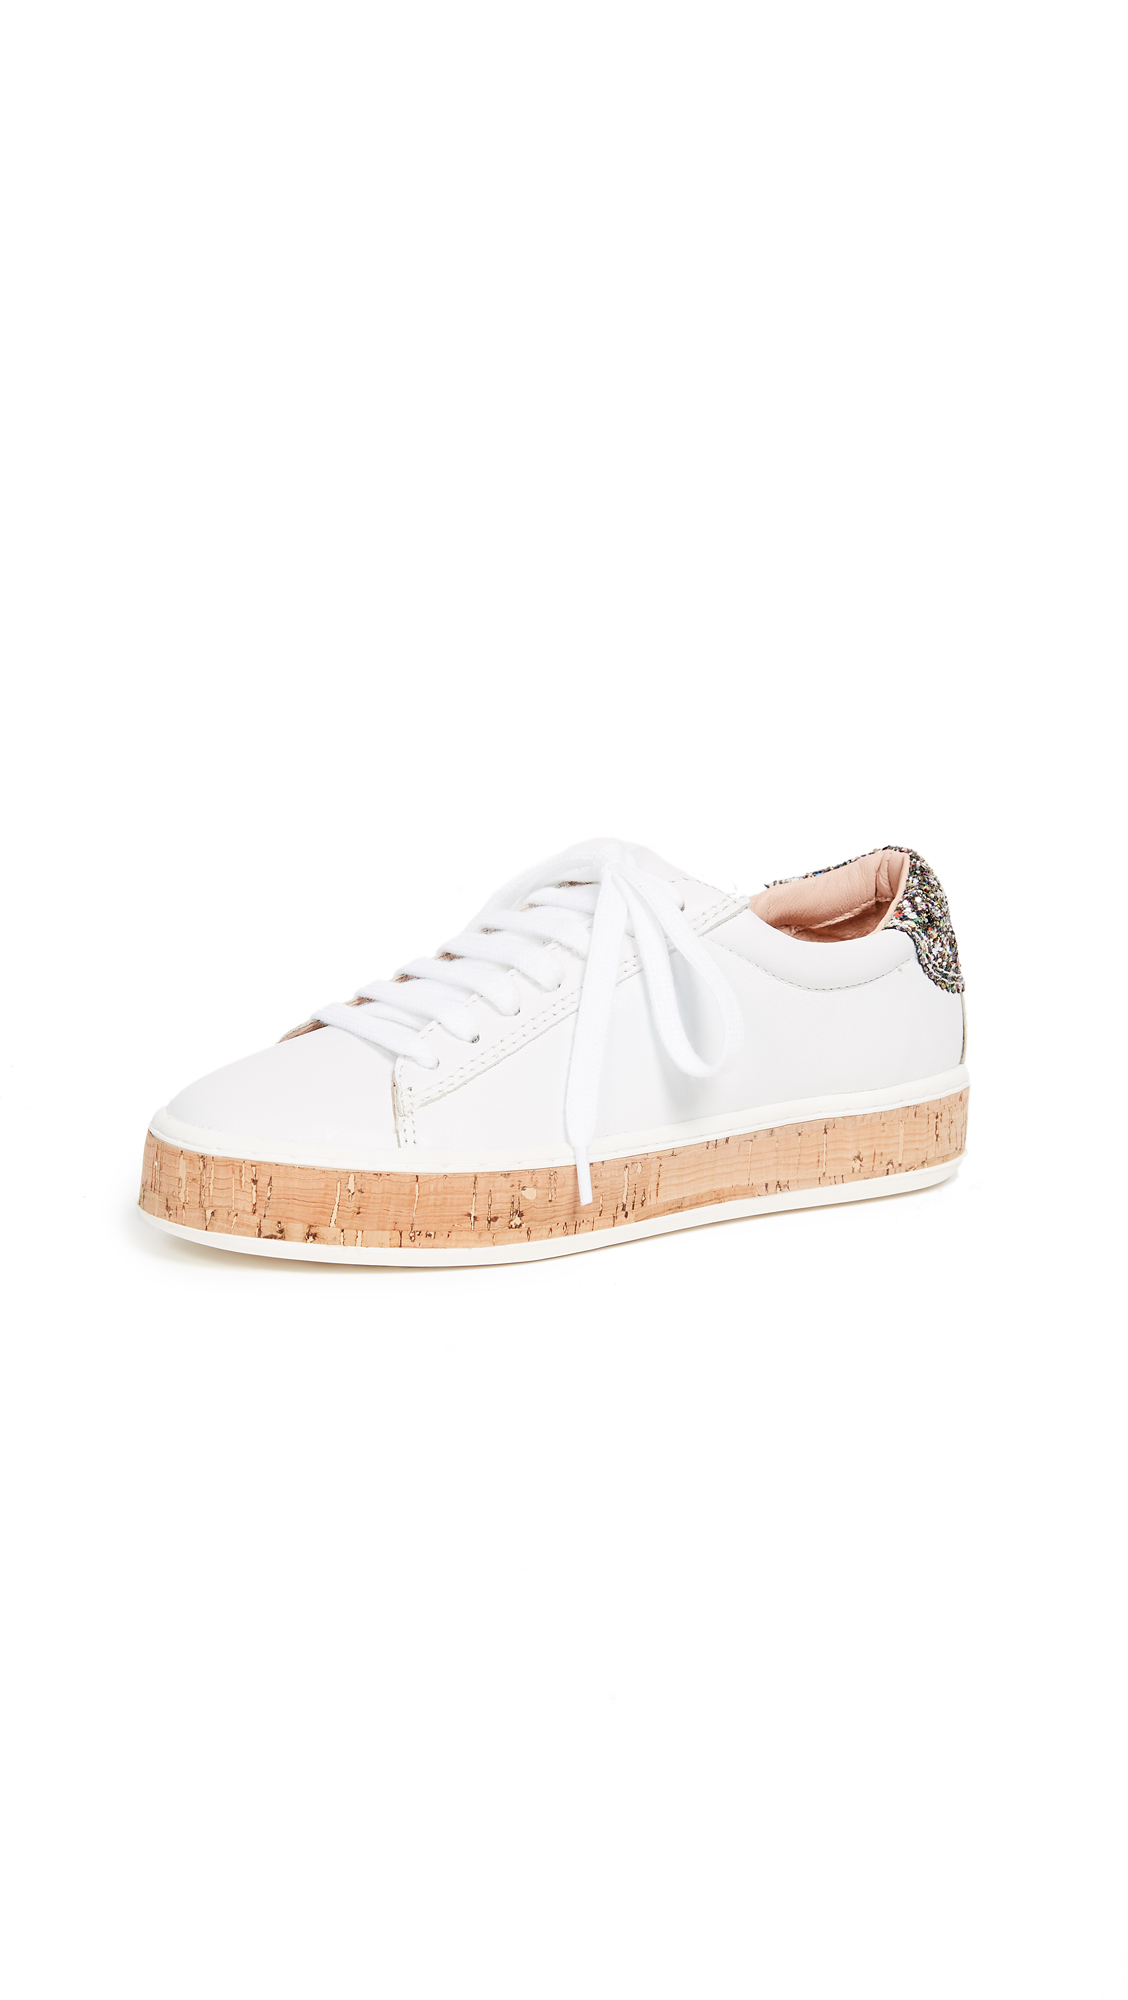 Kate Spade New York Amy Espadrille Sneakers - White